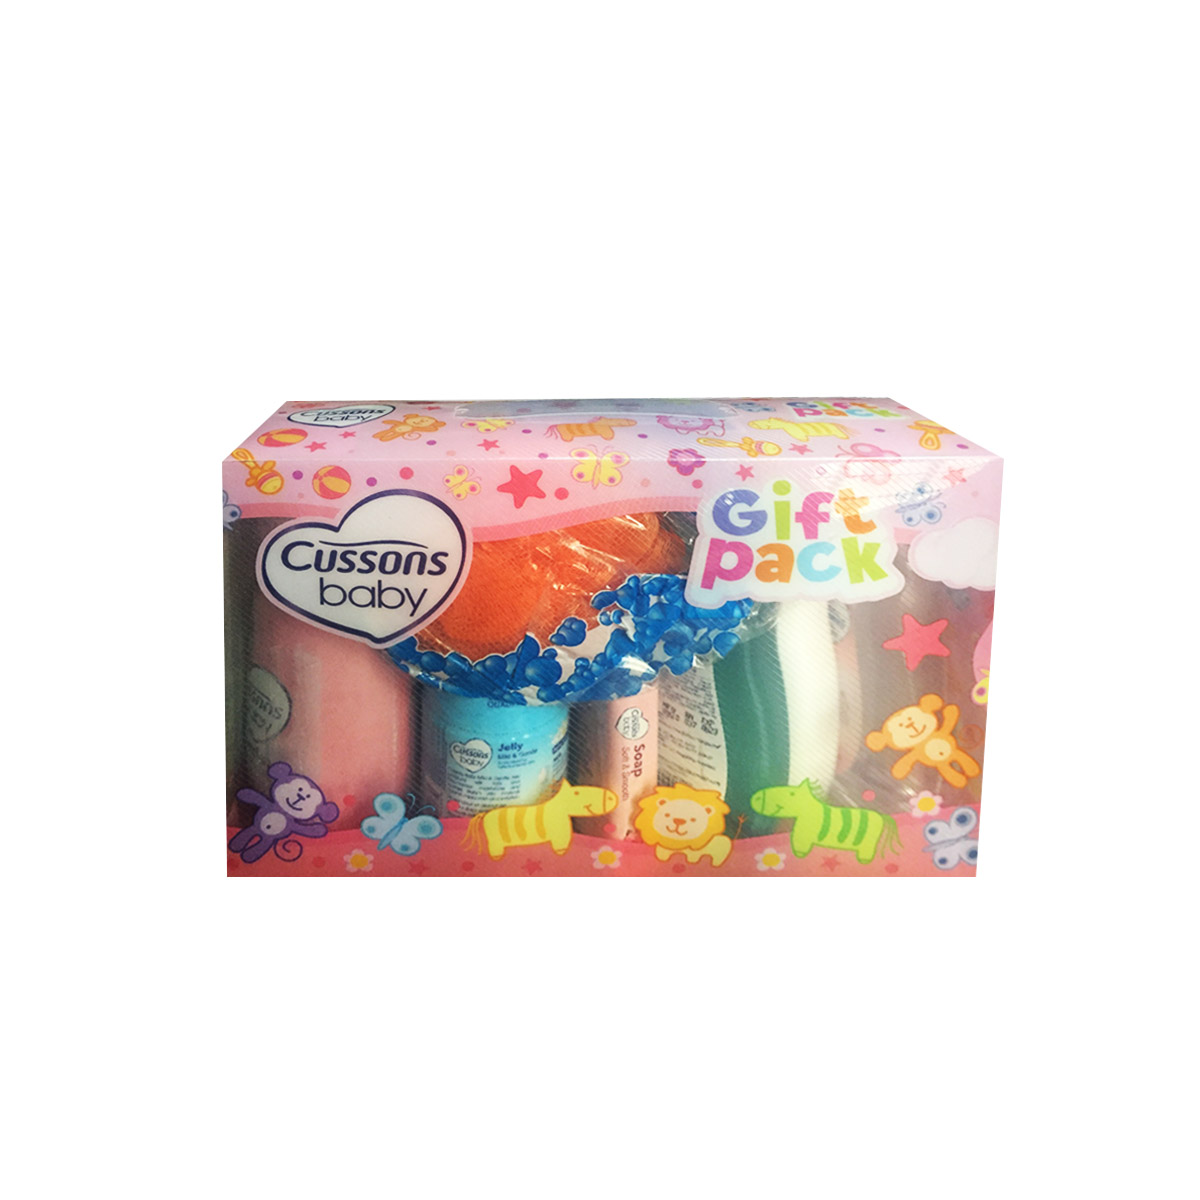 Cussons Baby Gift Pack Pink x 7